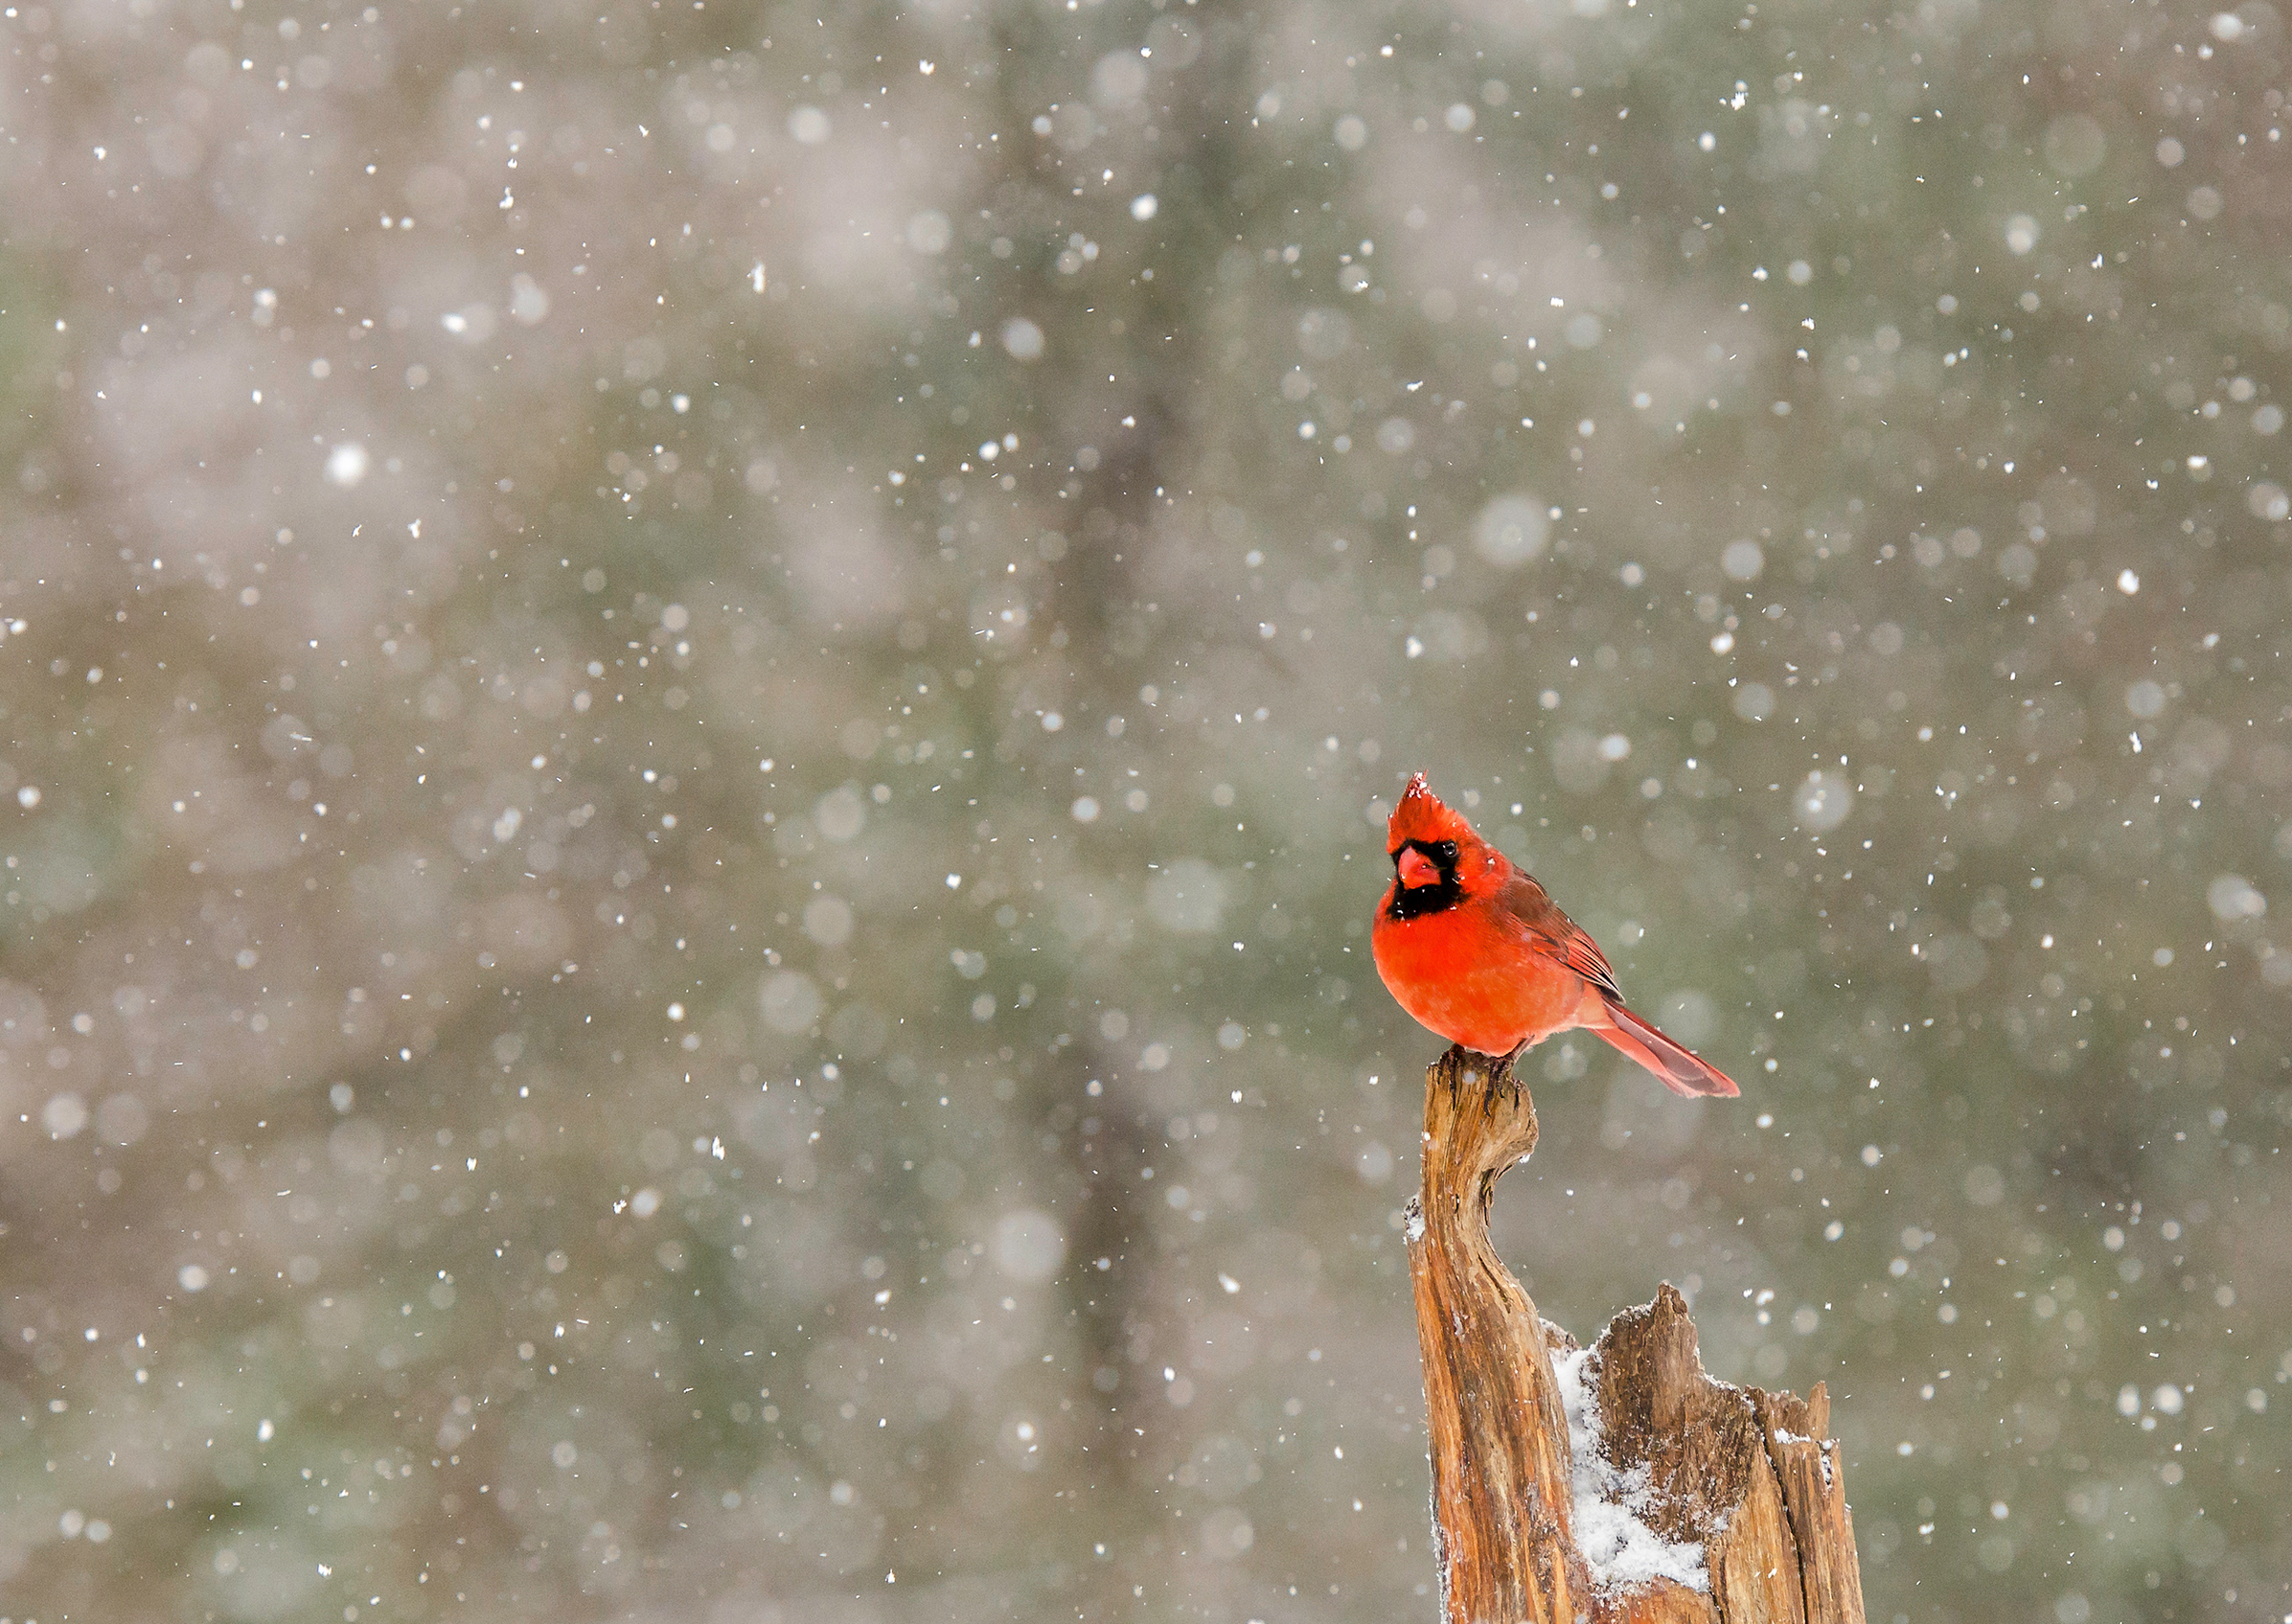 Audubon Christmas Cards 2020 Holiday Birding Traditions, as Told by Our Members | Audubon